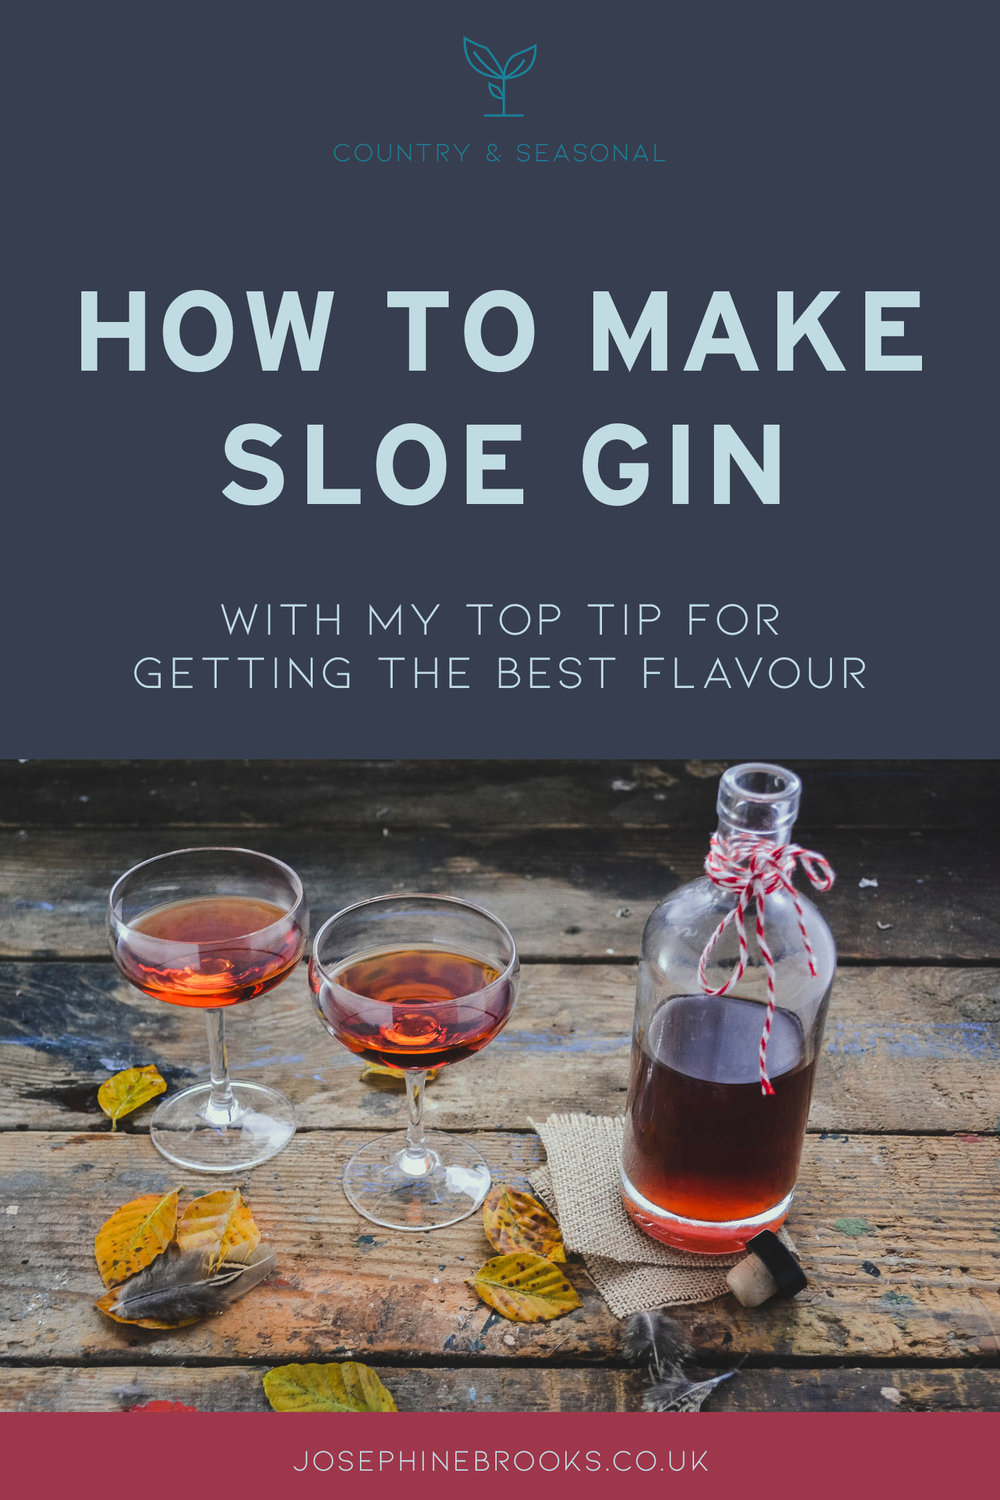 How to make sloe gin - with my top tip for getting the best flavour - sloe gin recipe, foraged slow gin, homemade slow gin